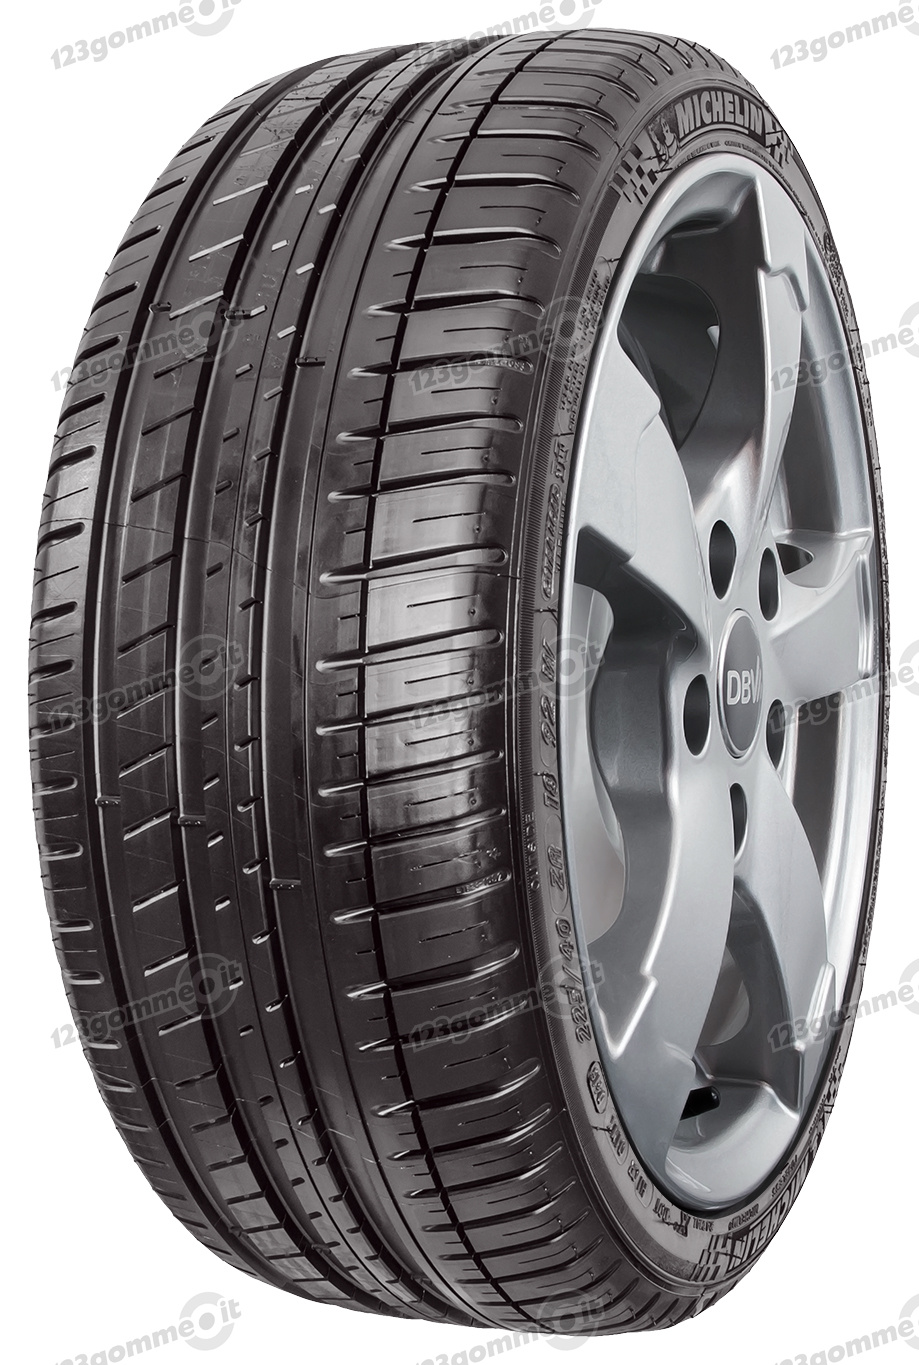 275/40 R19 101Y Pilot Sport 3 UHP FSL MO  Pilot Sport 3 UHP FSL MO